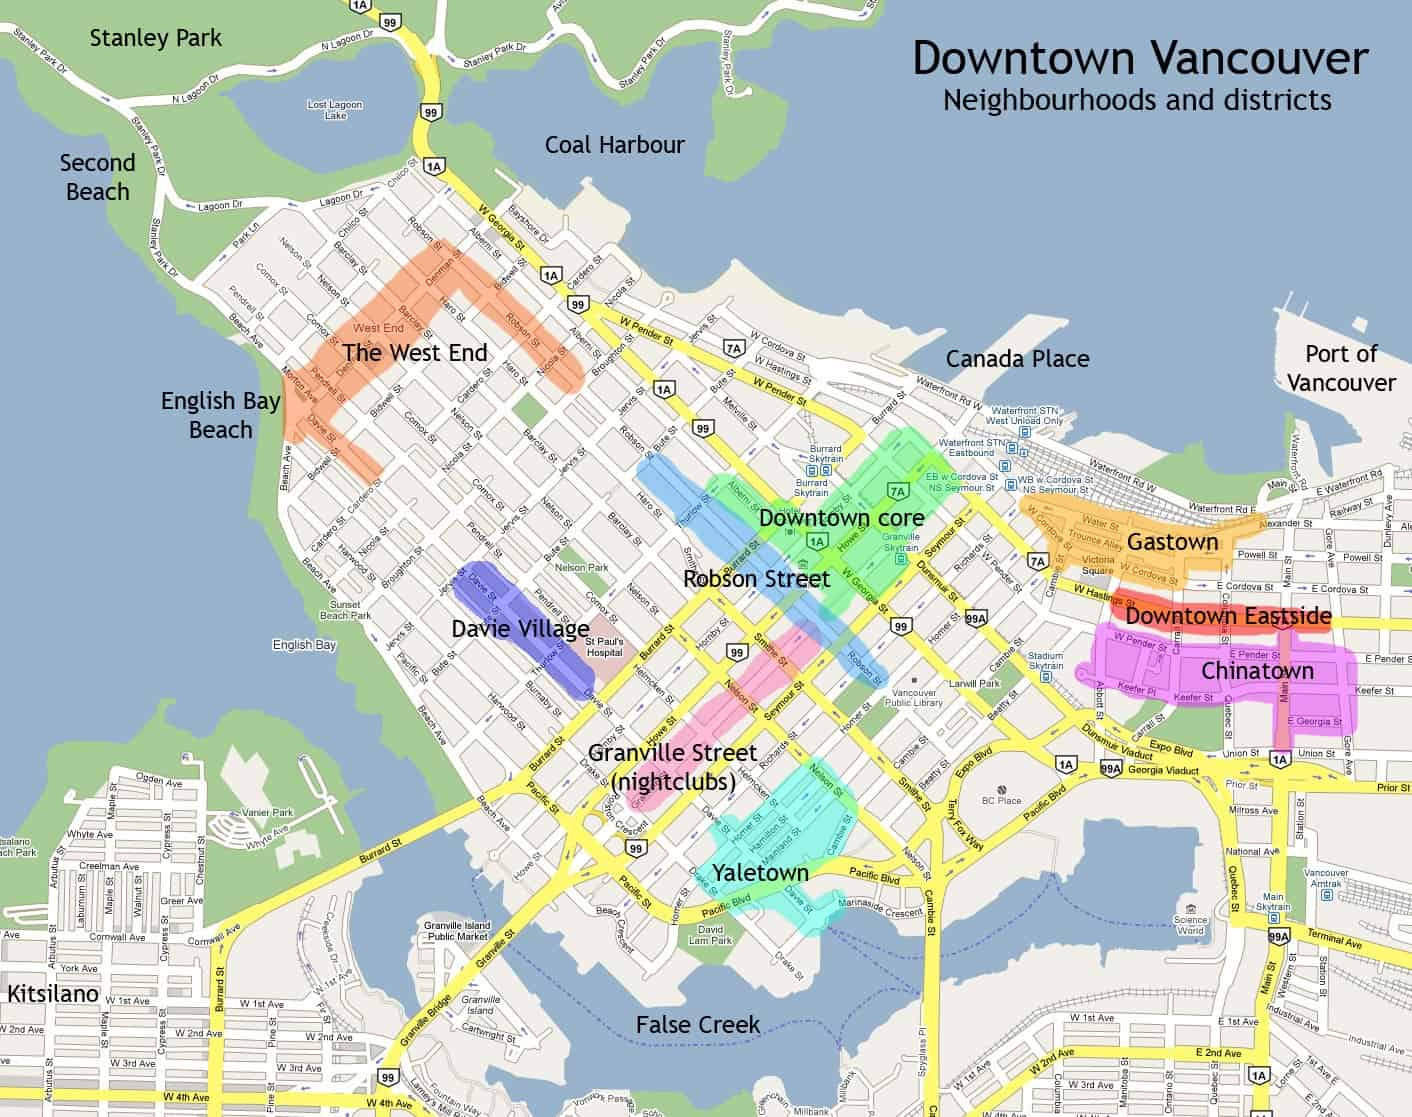 A map of Downtown Vancouver